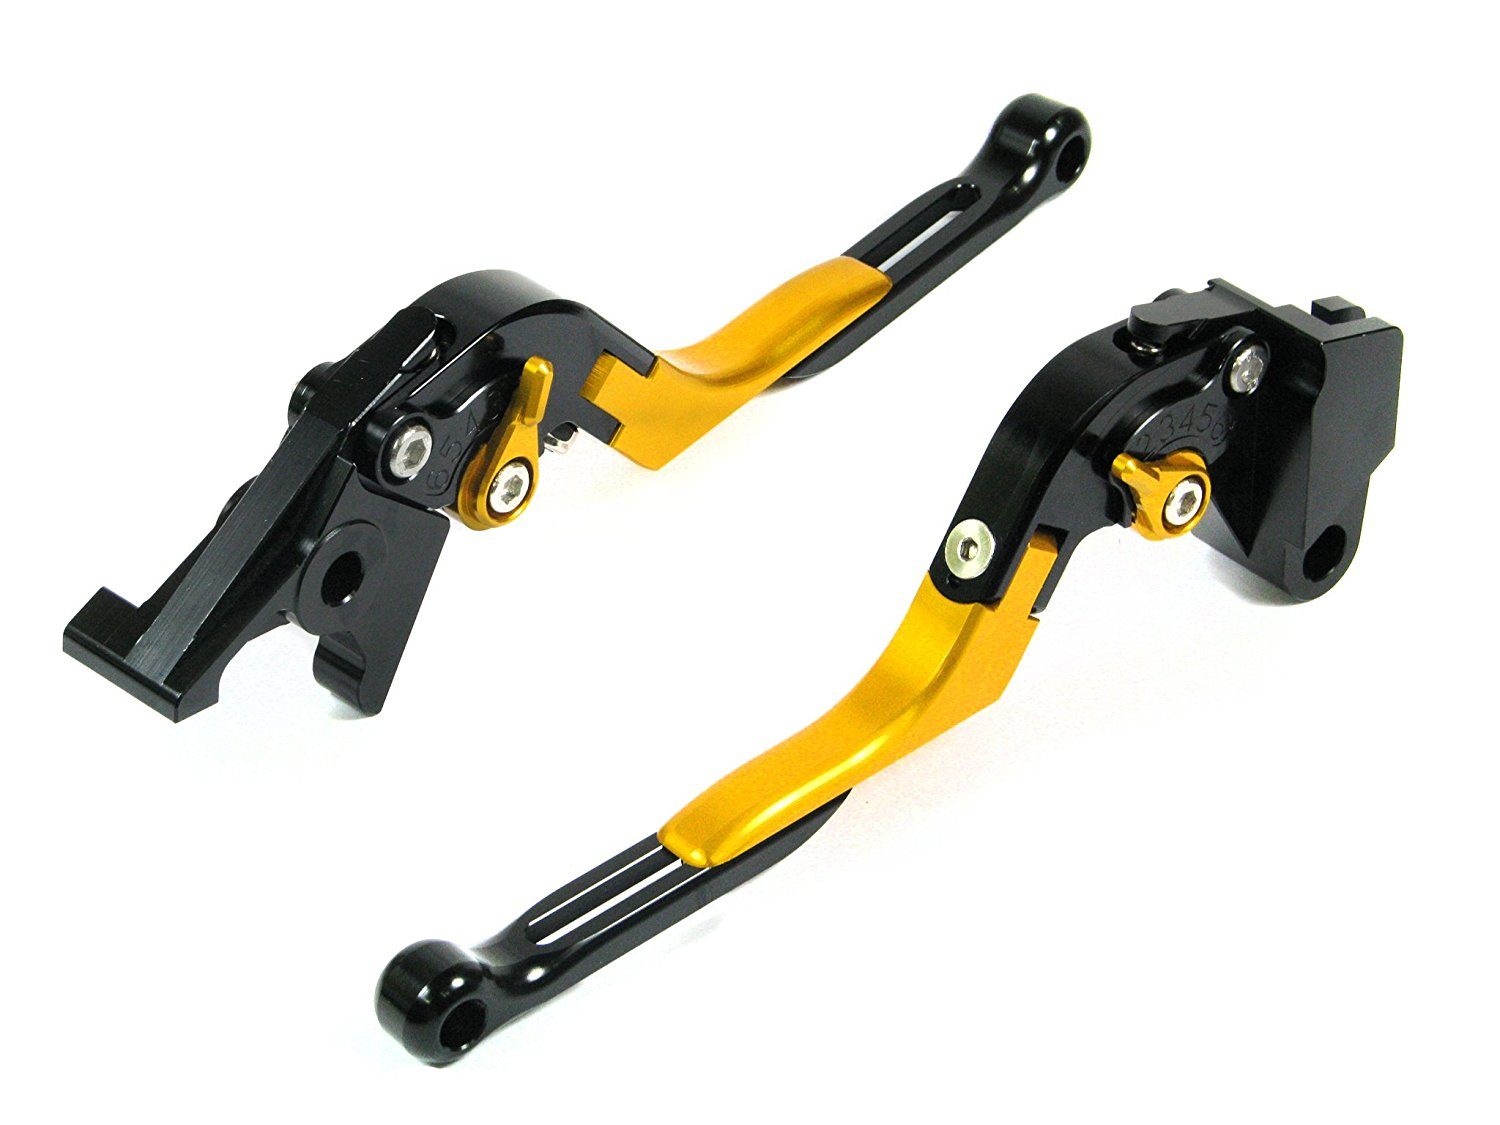 Autobahn88 Performance-Extendable-Foldable-Series Motorcycle Clutch Brake Lever Set for Hyosung GT250R 2006-2010 - Gold / Black-Gold-Black (Adjuster/Lever)